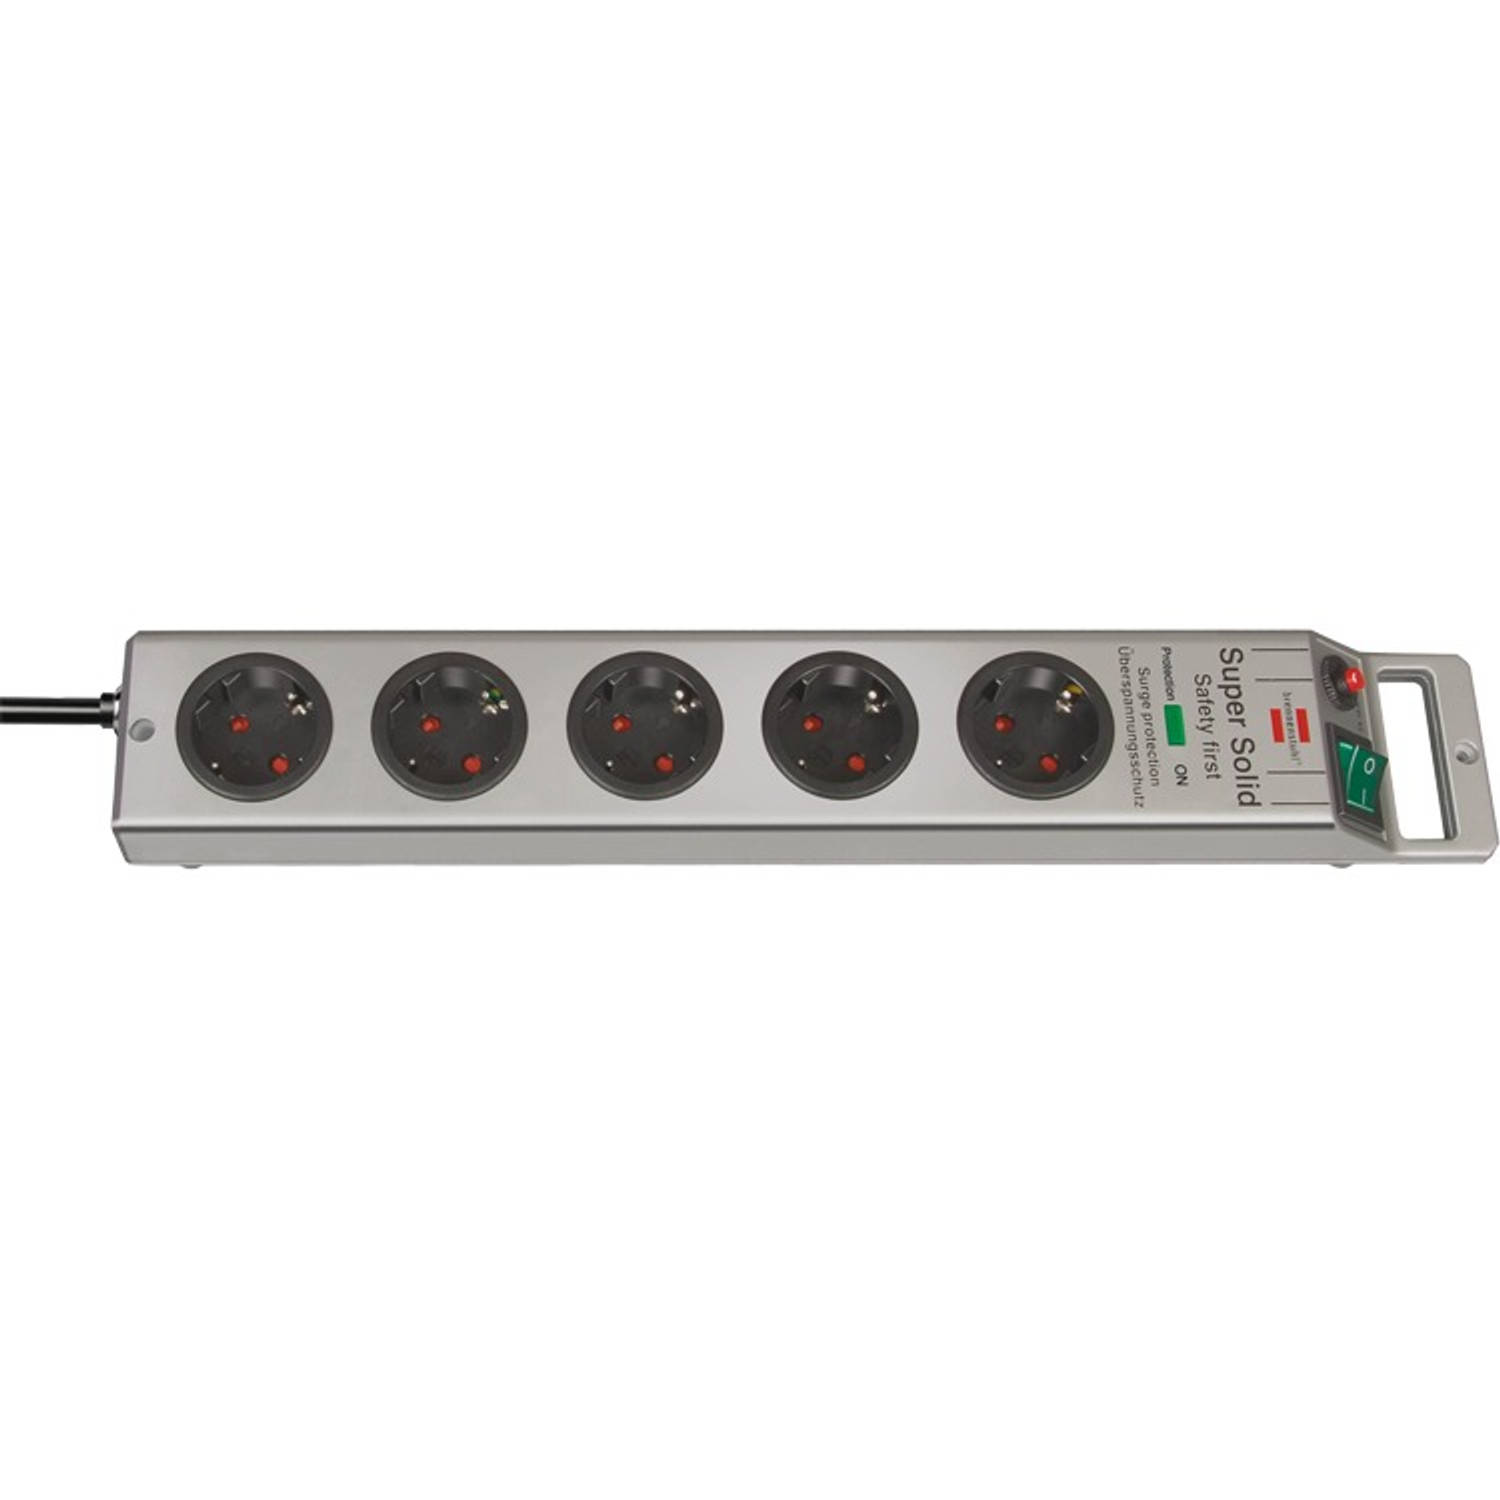 Super-Solid 13500A +surge protection 5x